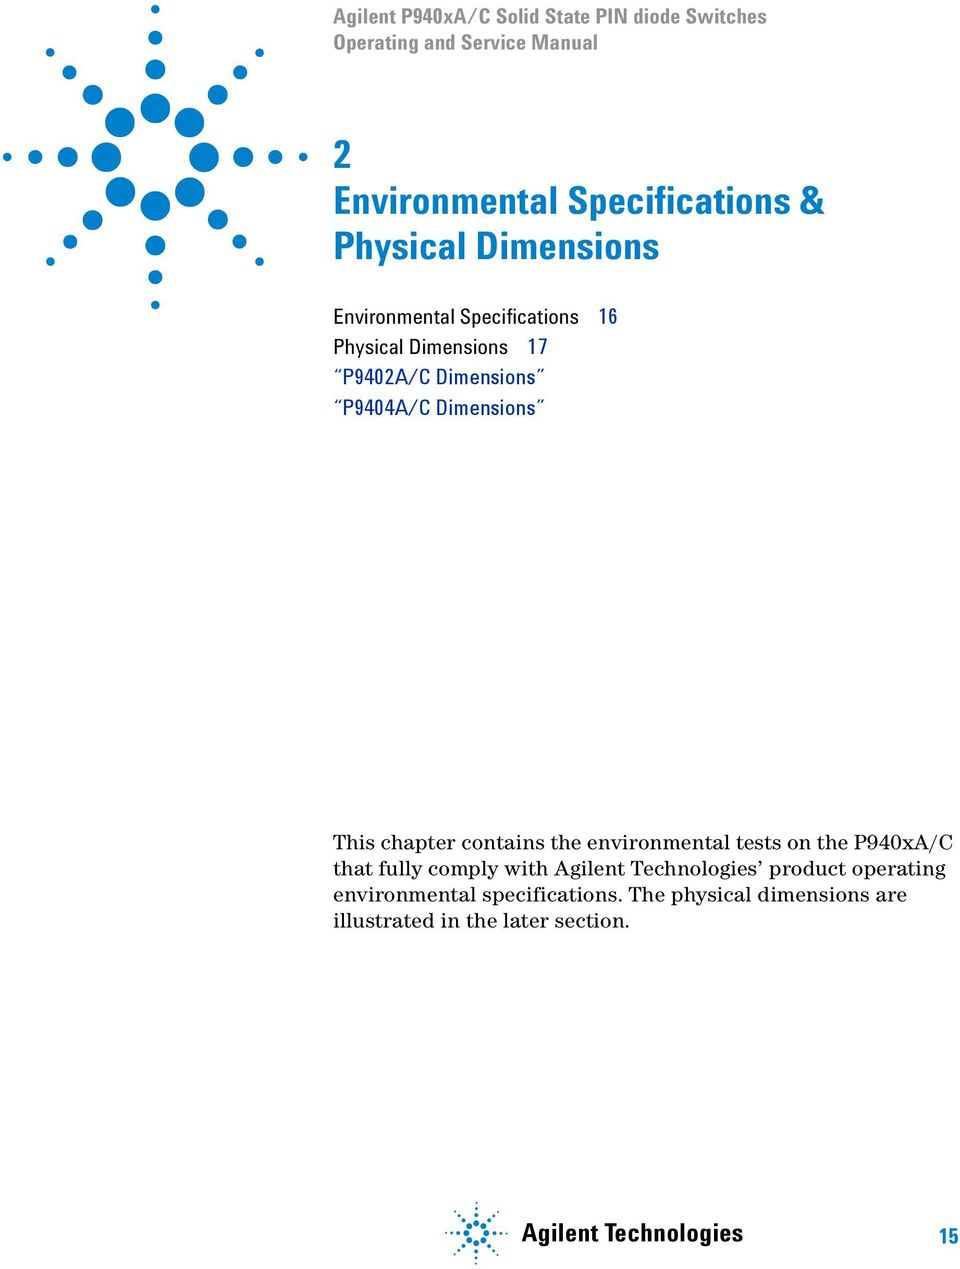 This chapter contains the environmental tests on the P940xA/C that fully comply with Agilent Technologies product